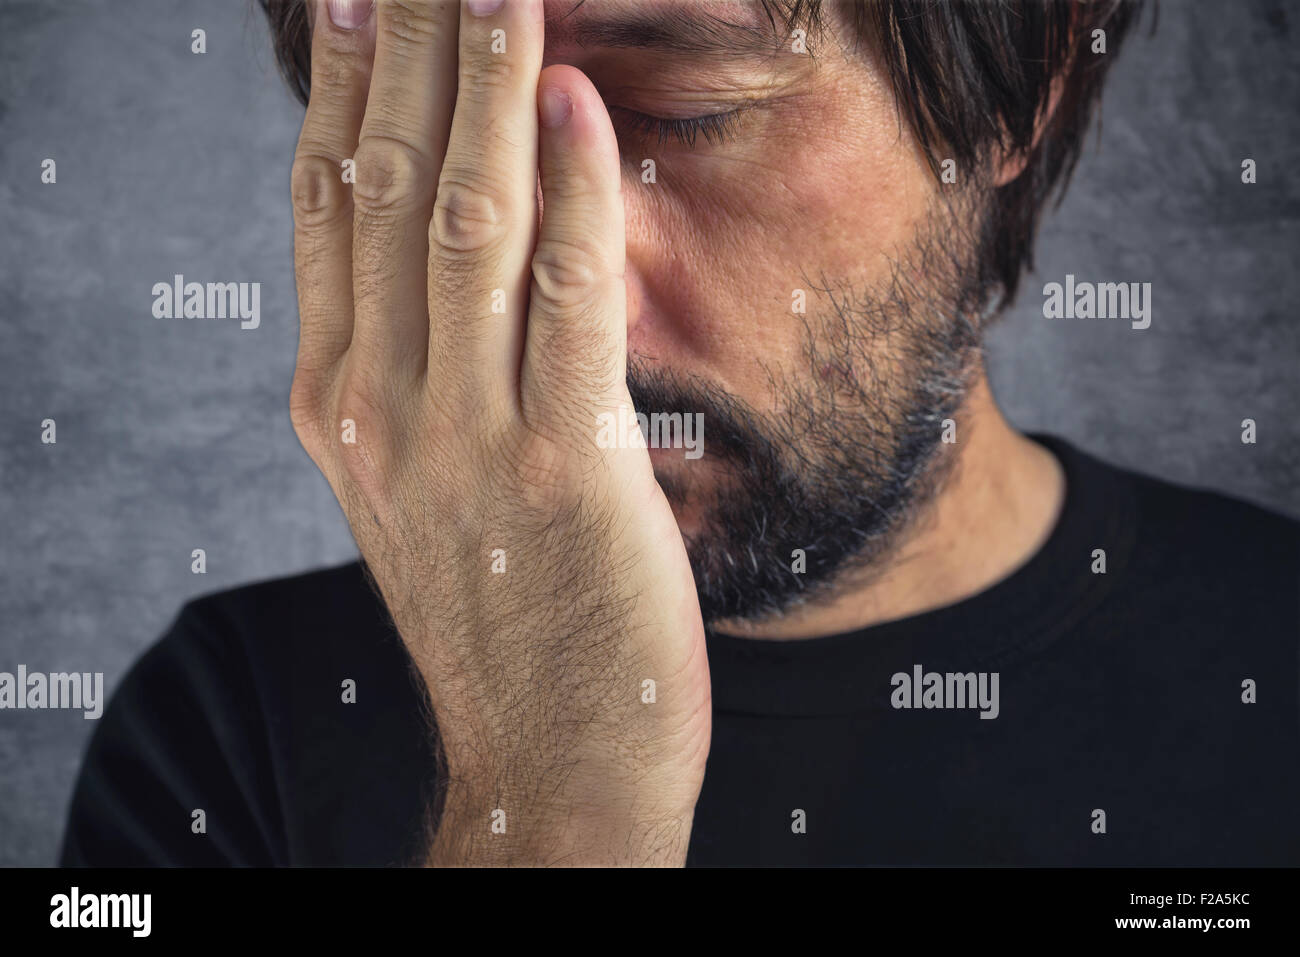 Portrait of man in trouble, problems in life - Stock Image